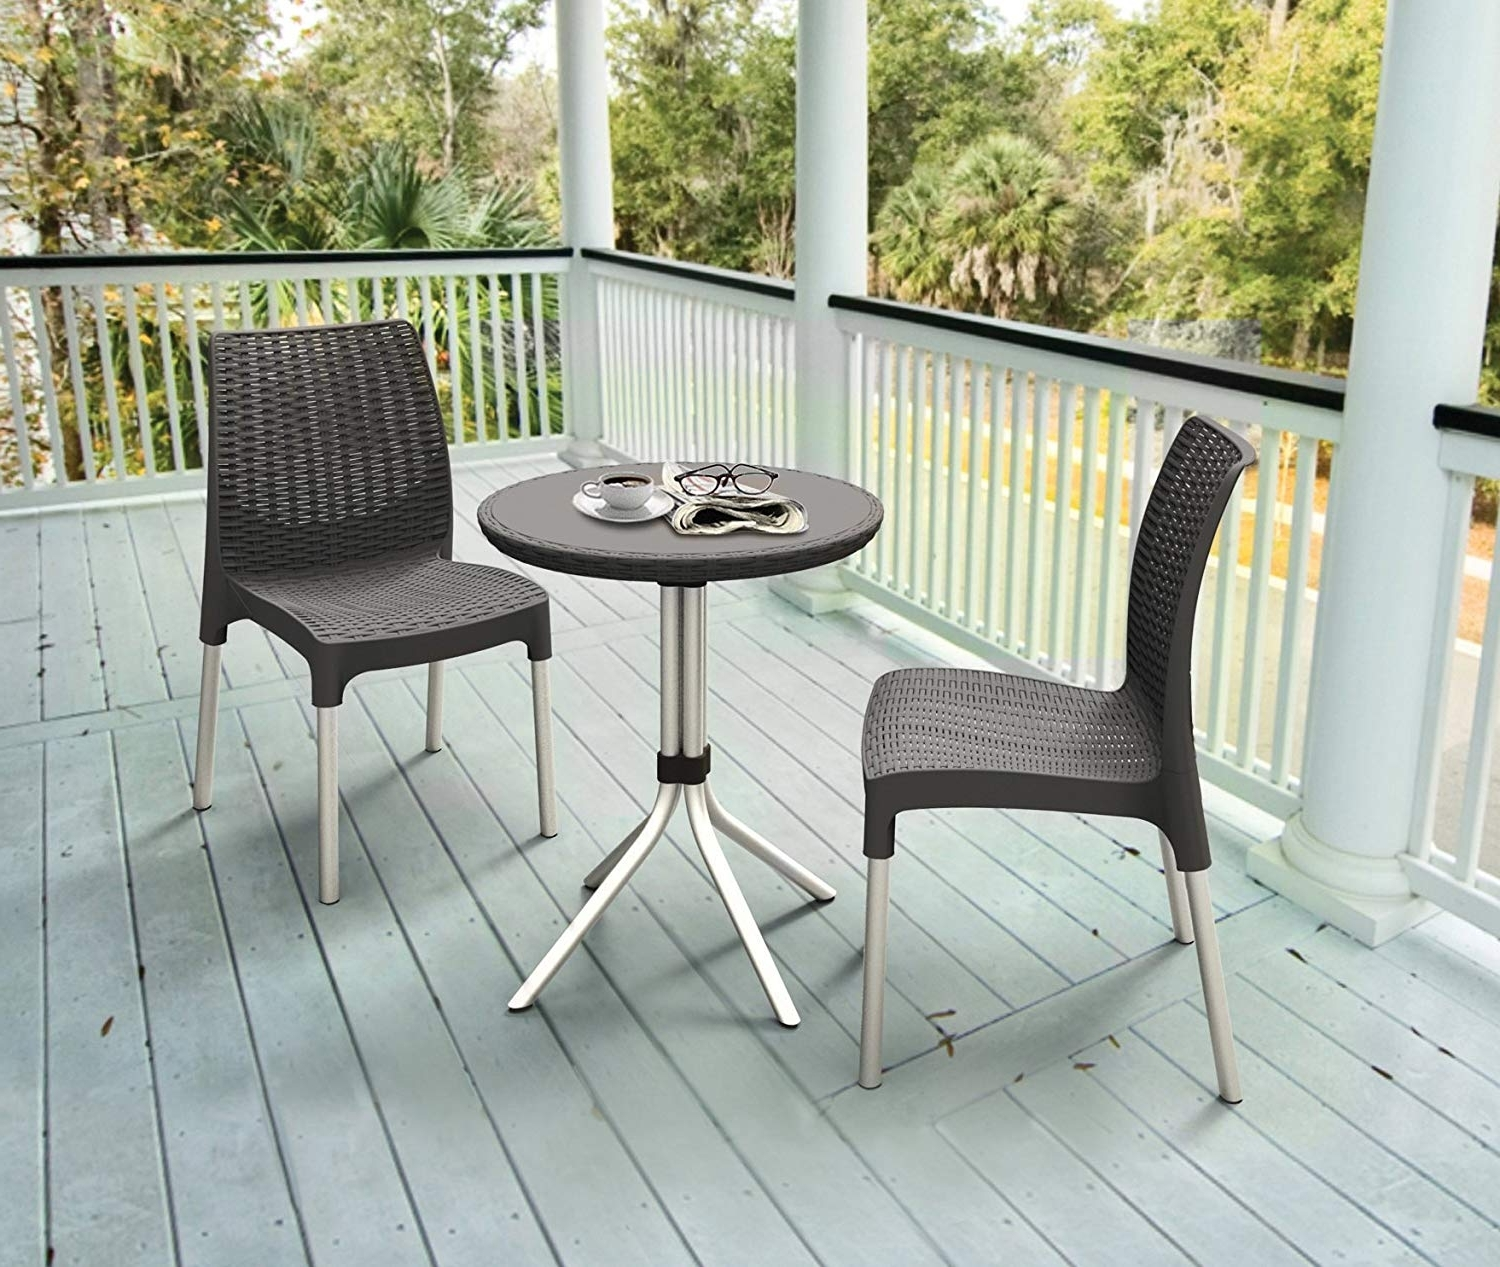 Amazon: Keter Chelsea 3 Piece Resin Outdoor Patio Furniture For Popular Garten Storm Chairs With Espresso Finish Set Of (View 3 of 20)